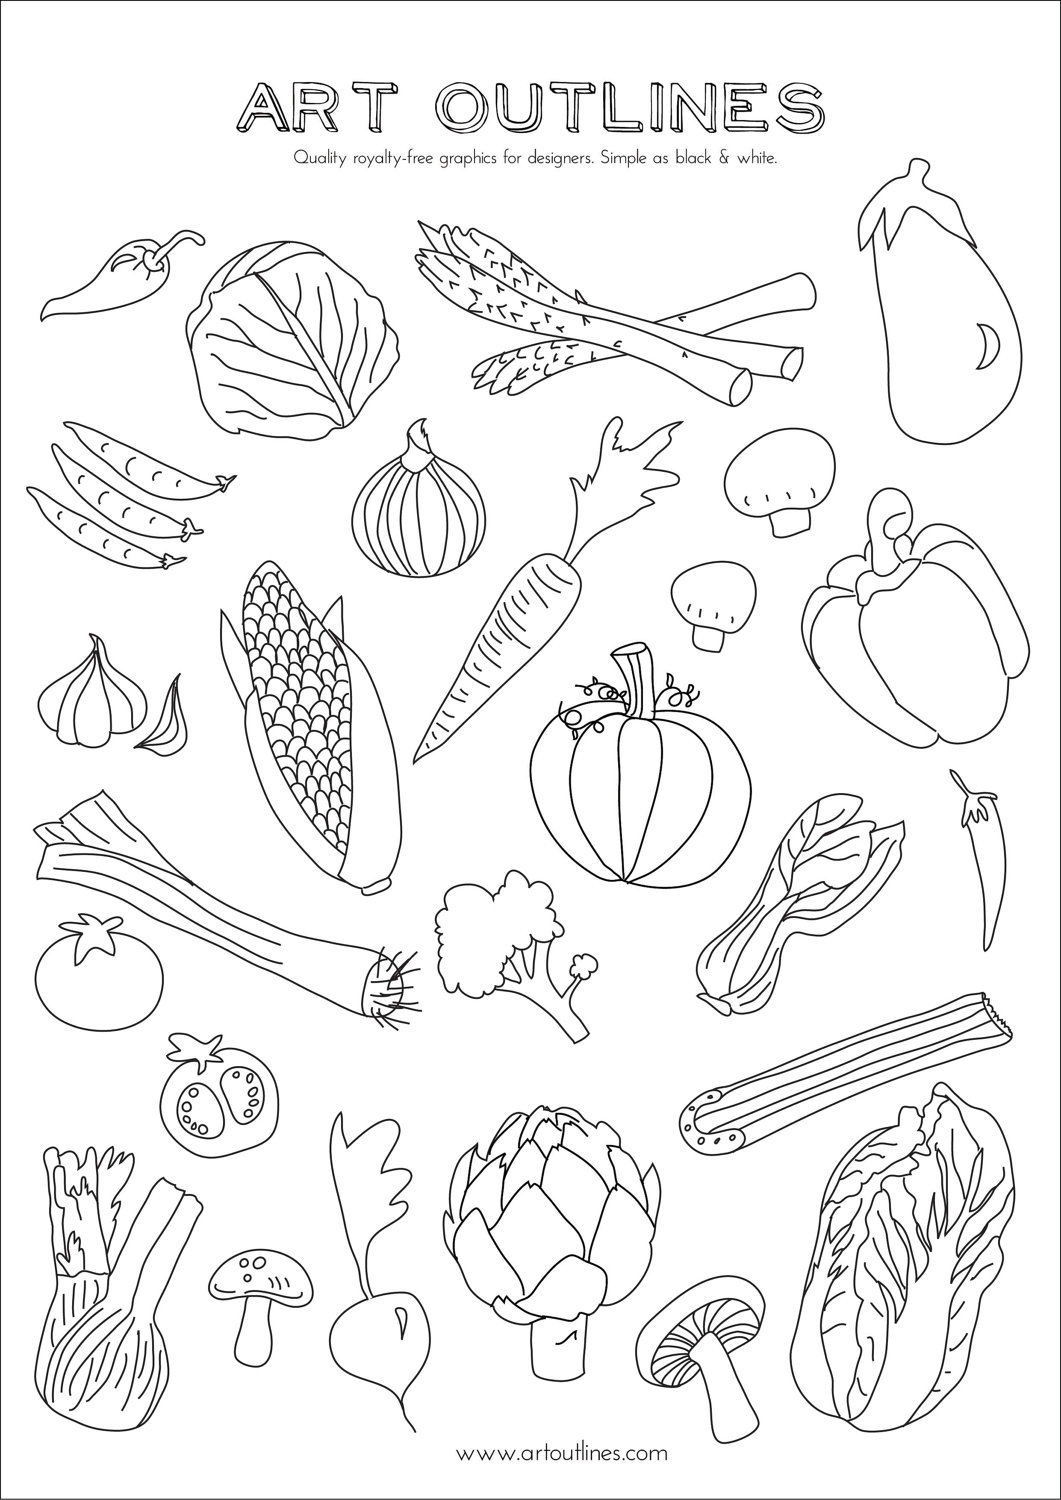 vegetables drawing for coloring vegetable coloring pages for childrens printable for free drawing for vegetables coloring